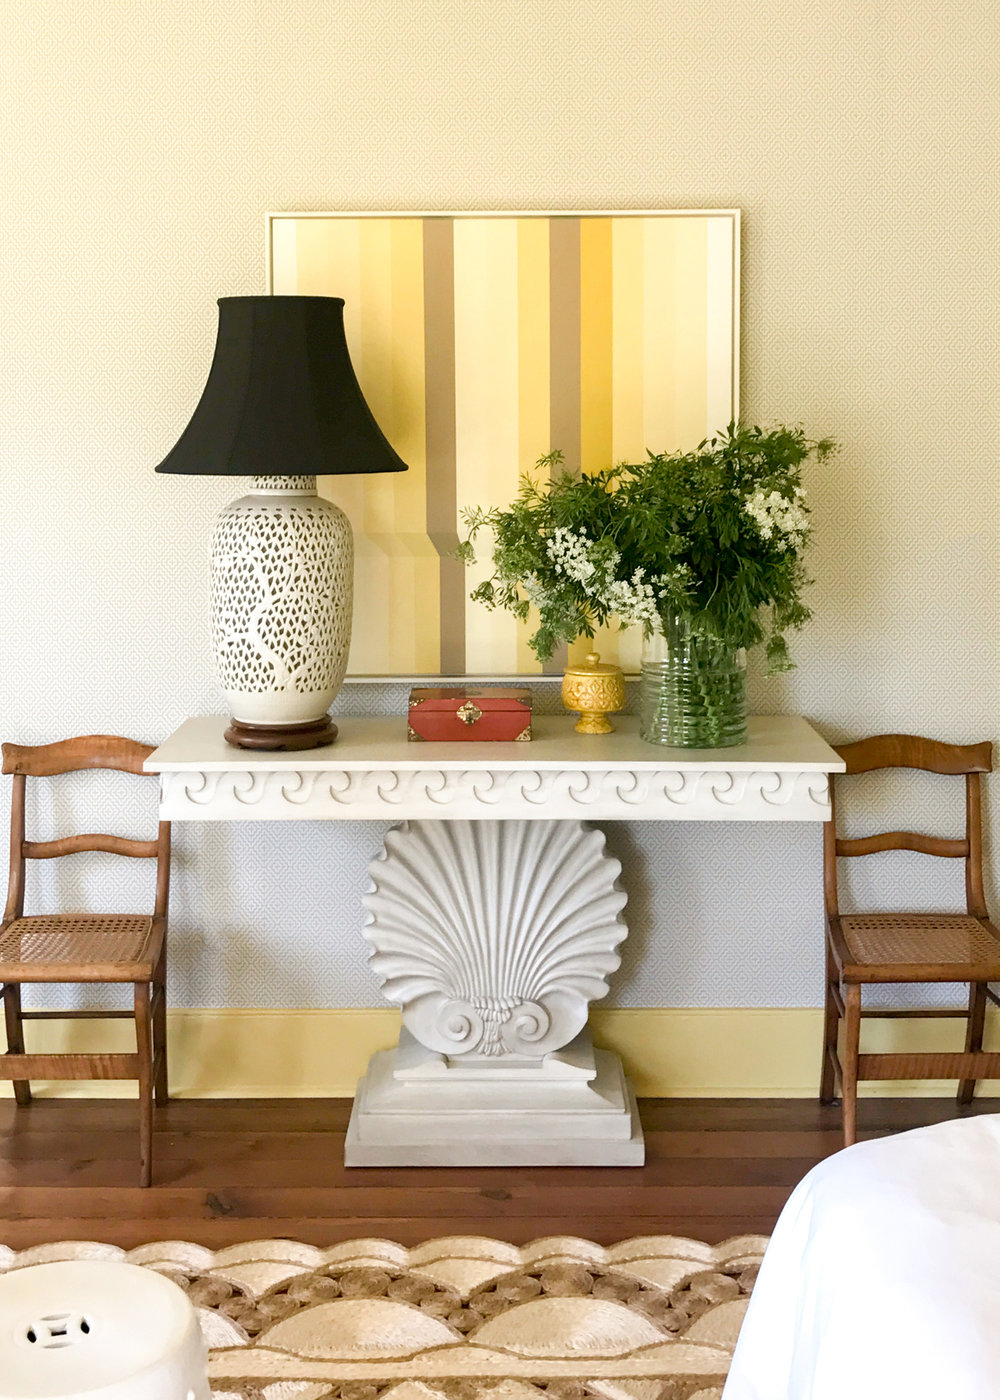 custom art by  gina julian  /  miles redd shell console  / vintage lamp, chairs, accessories